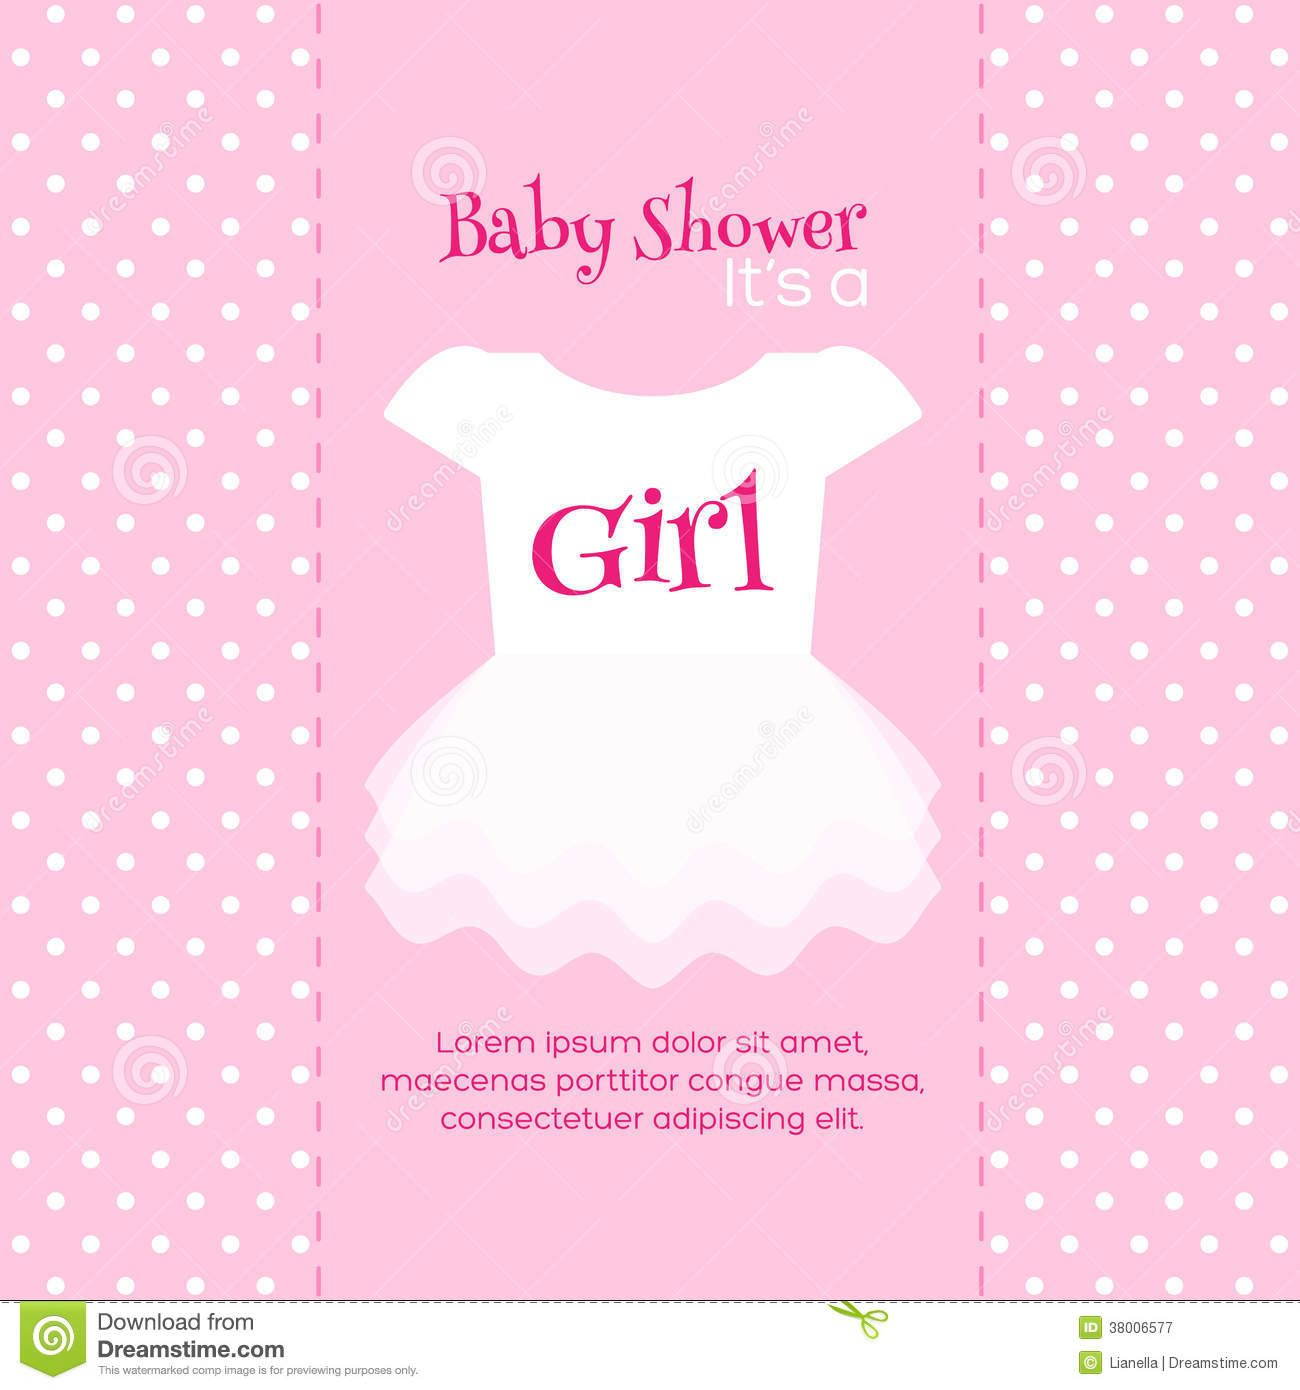 Create Invitation Template: Design : Free Printable Baby Shower Invitations For Girls